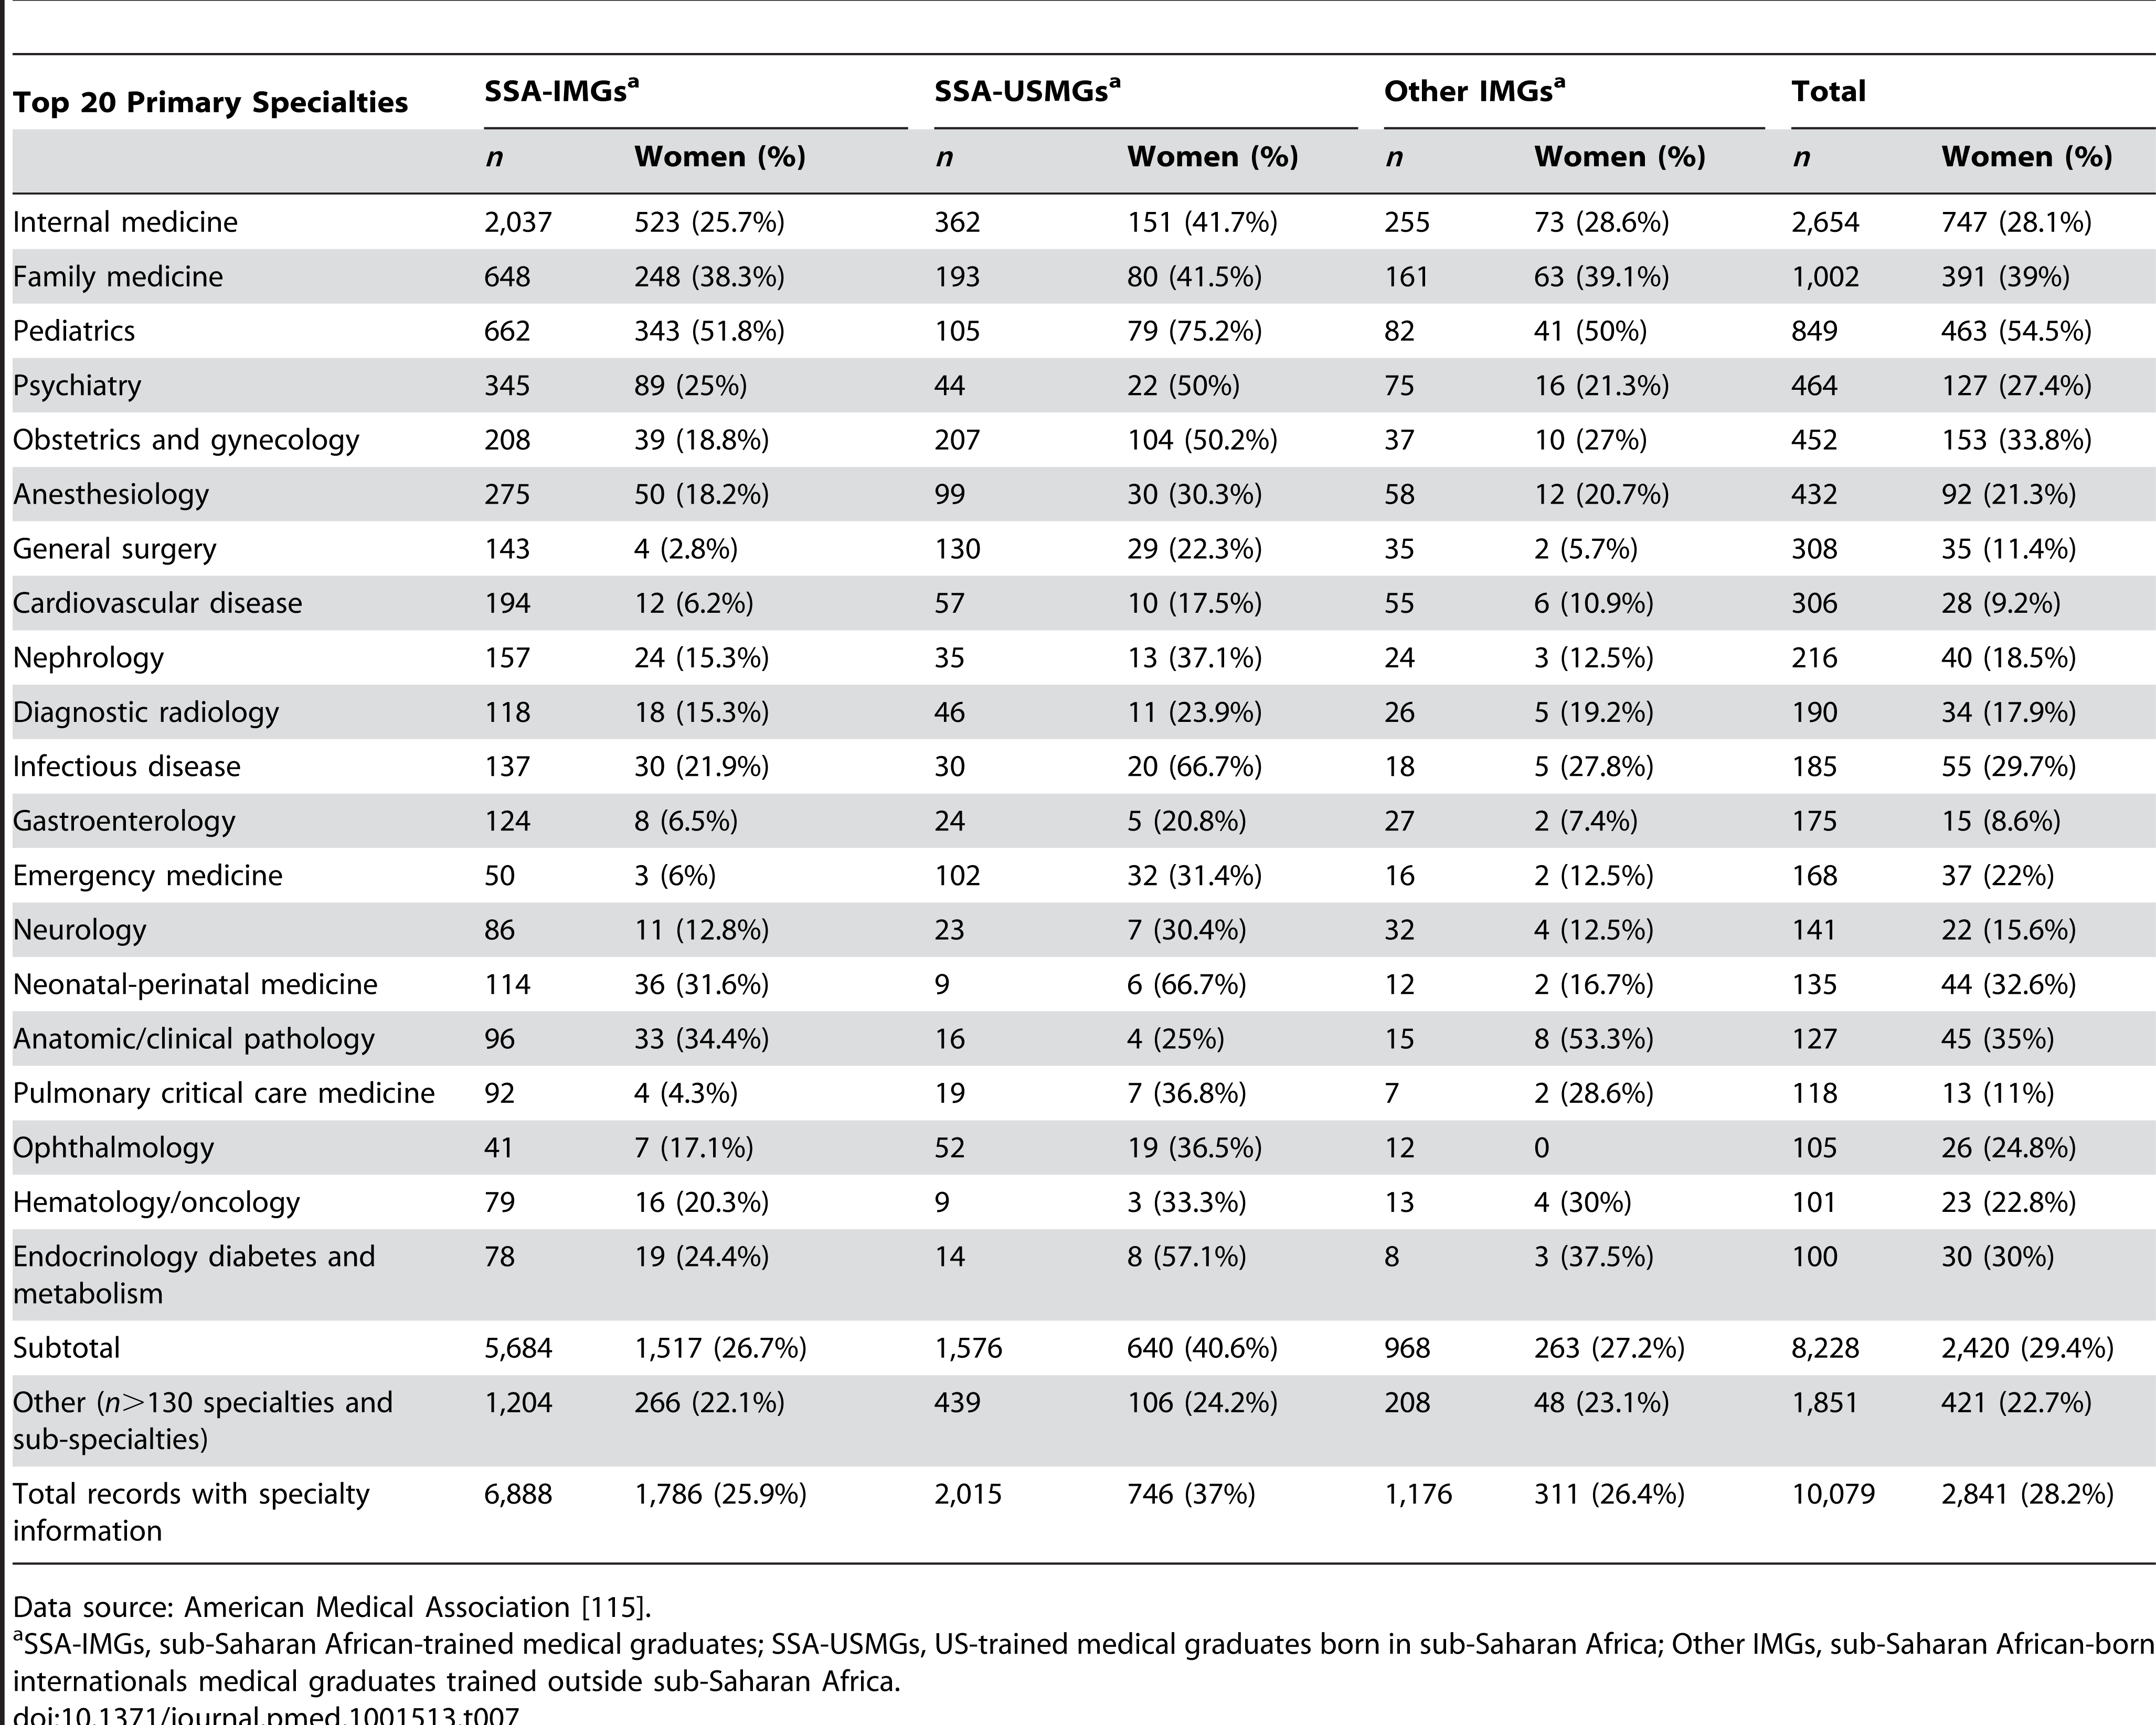 Primary specialty choices among Sub-Saharan African migrant physicians appearing in the US physician workforce in 2011.